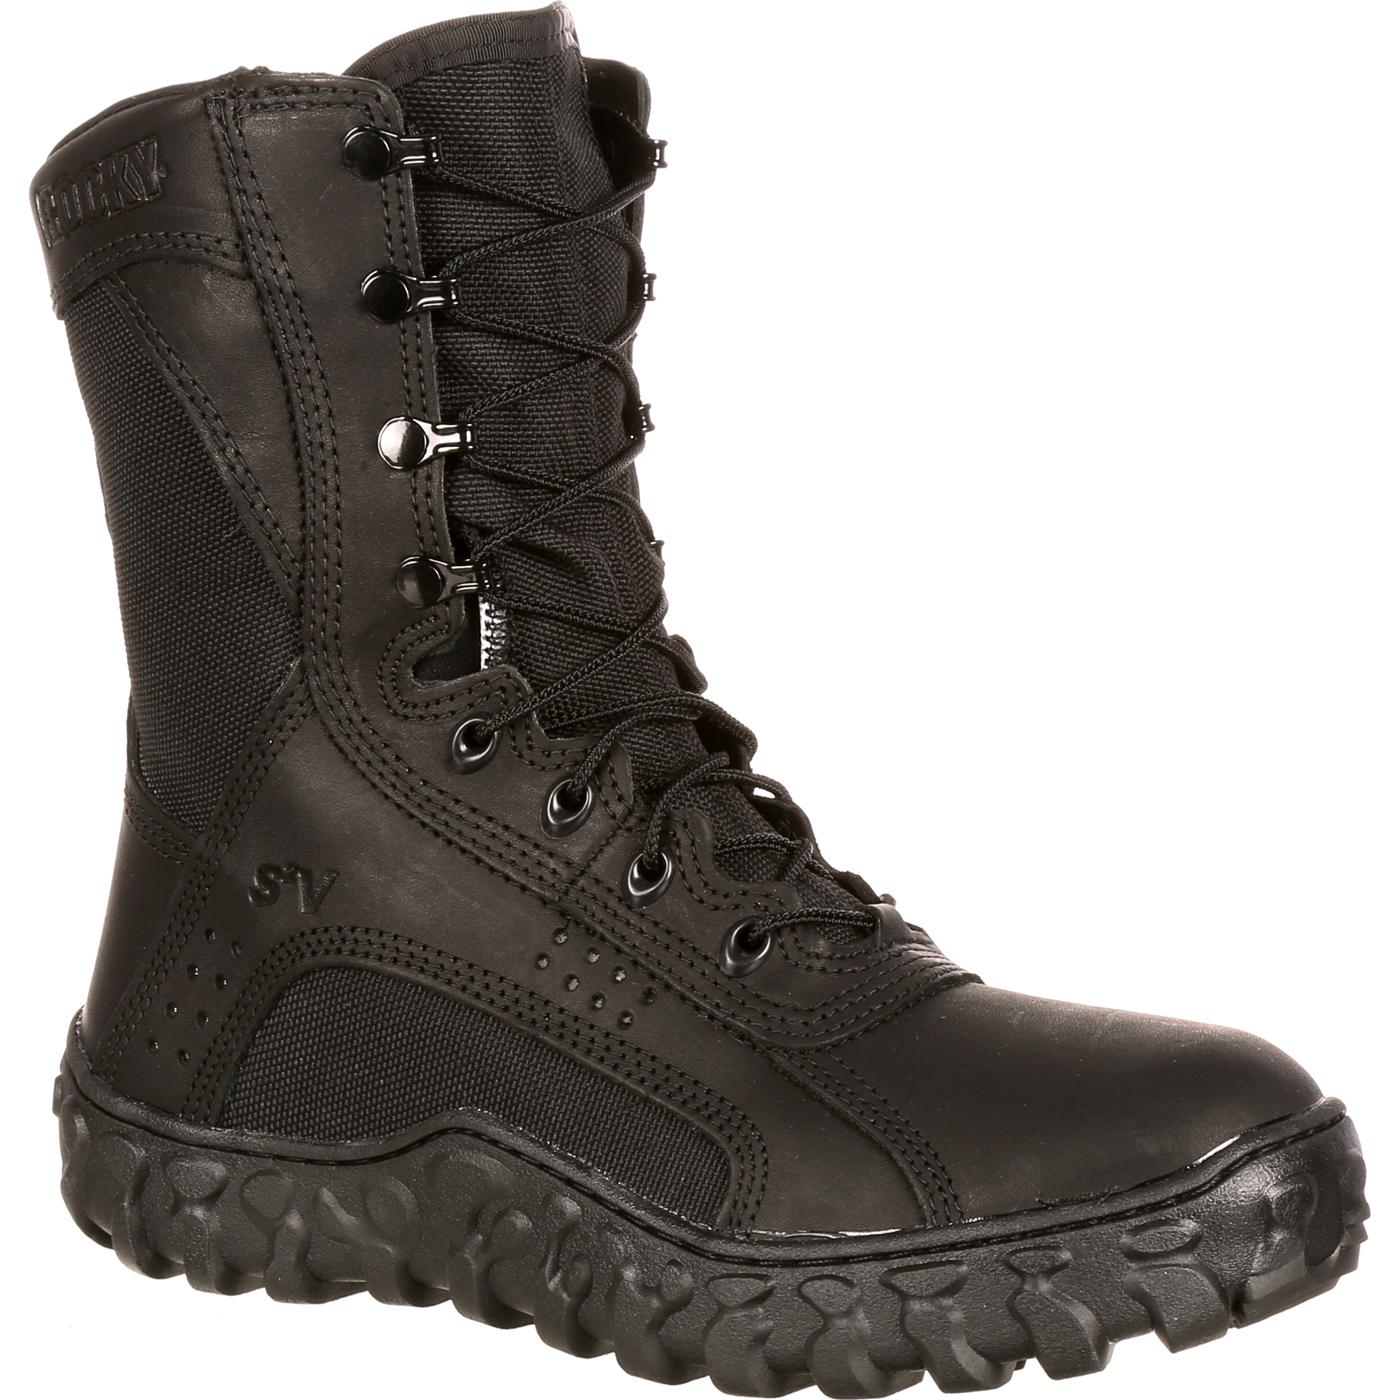 rocky boots rocky s2v tactical military boot, , large nbcunbi